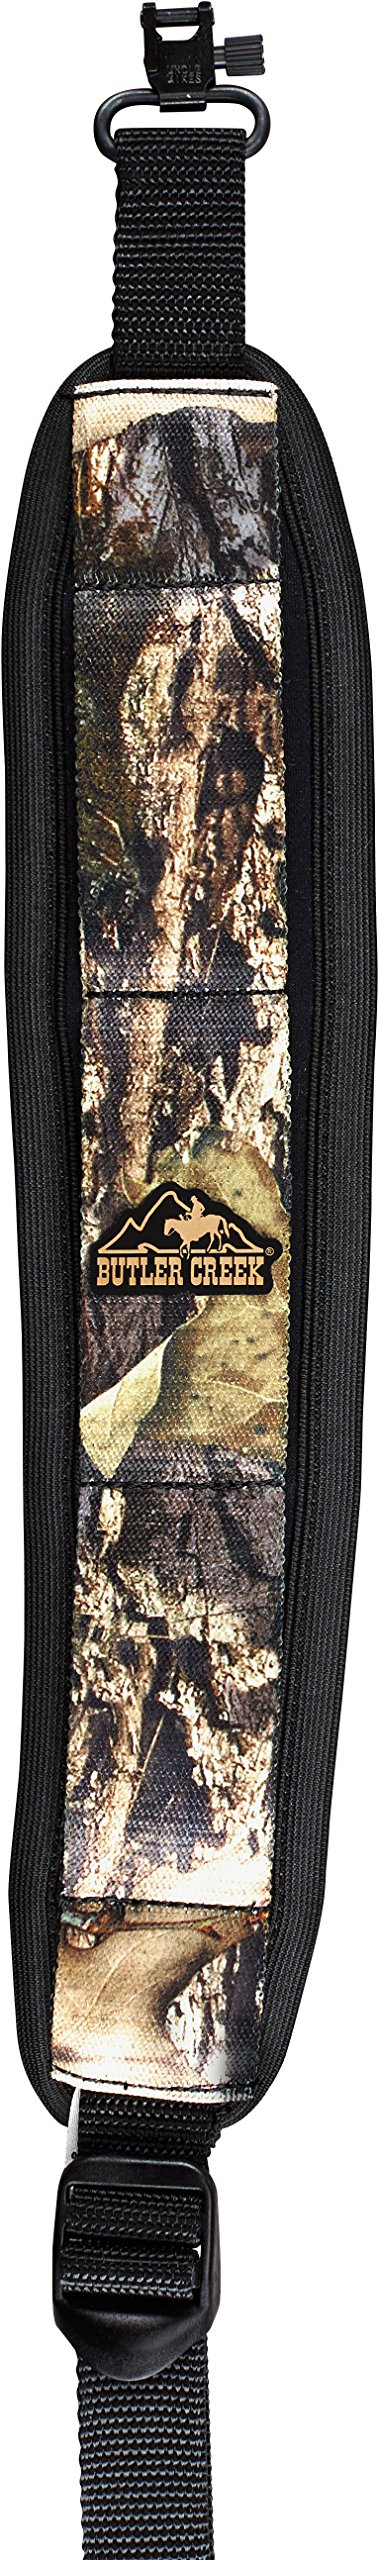 Butler Creek Comfort Stretch Rifle Sling with Swivels, Mossy Oak Break Up Country by Butler Creek